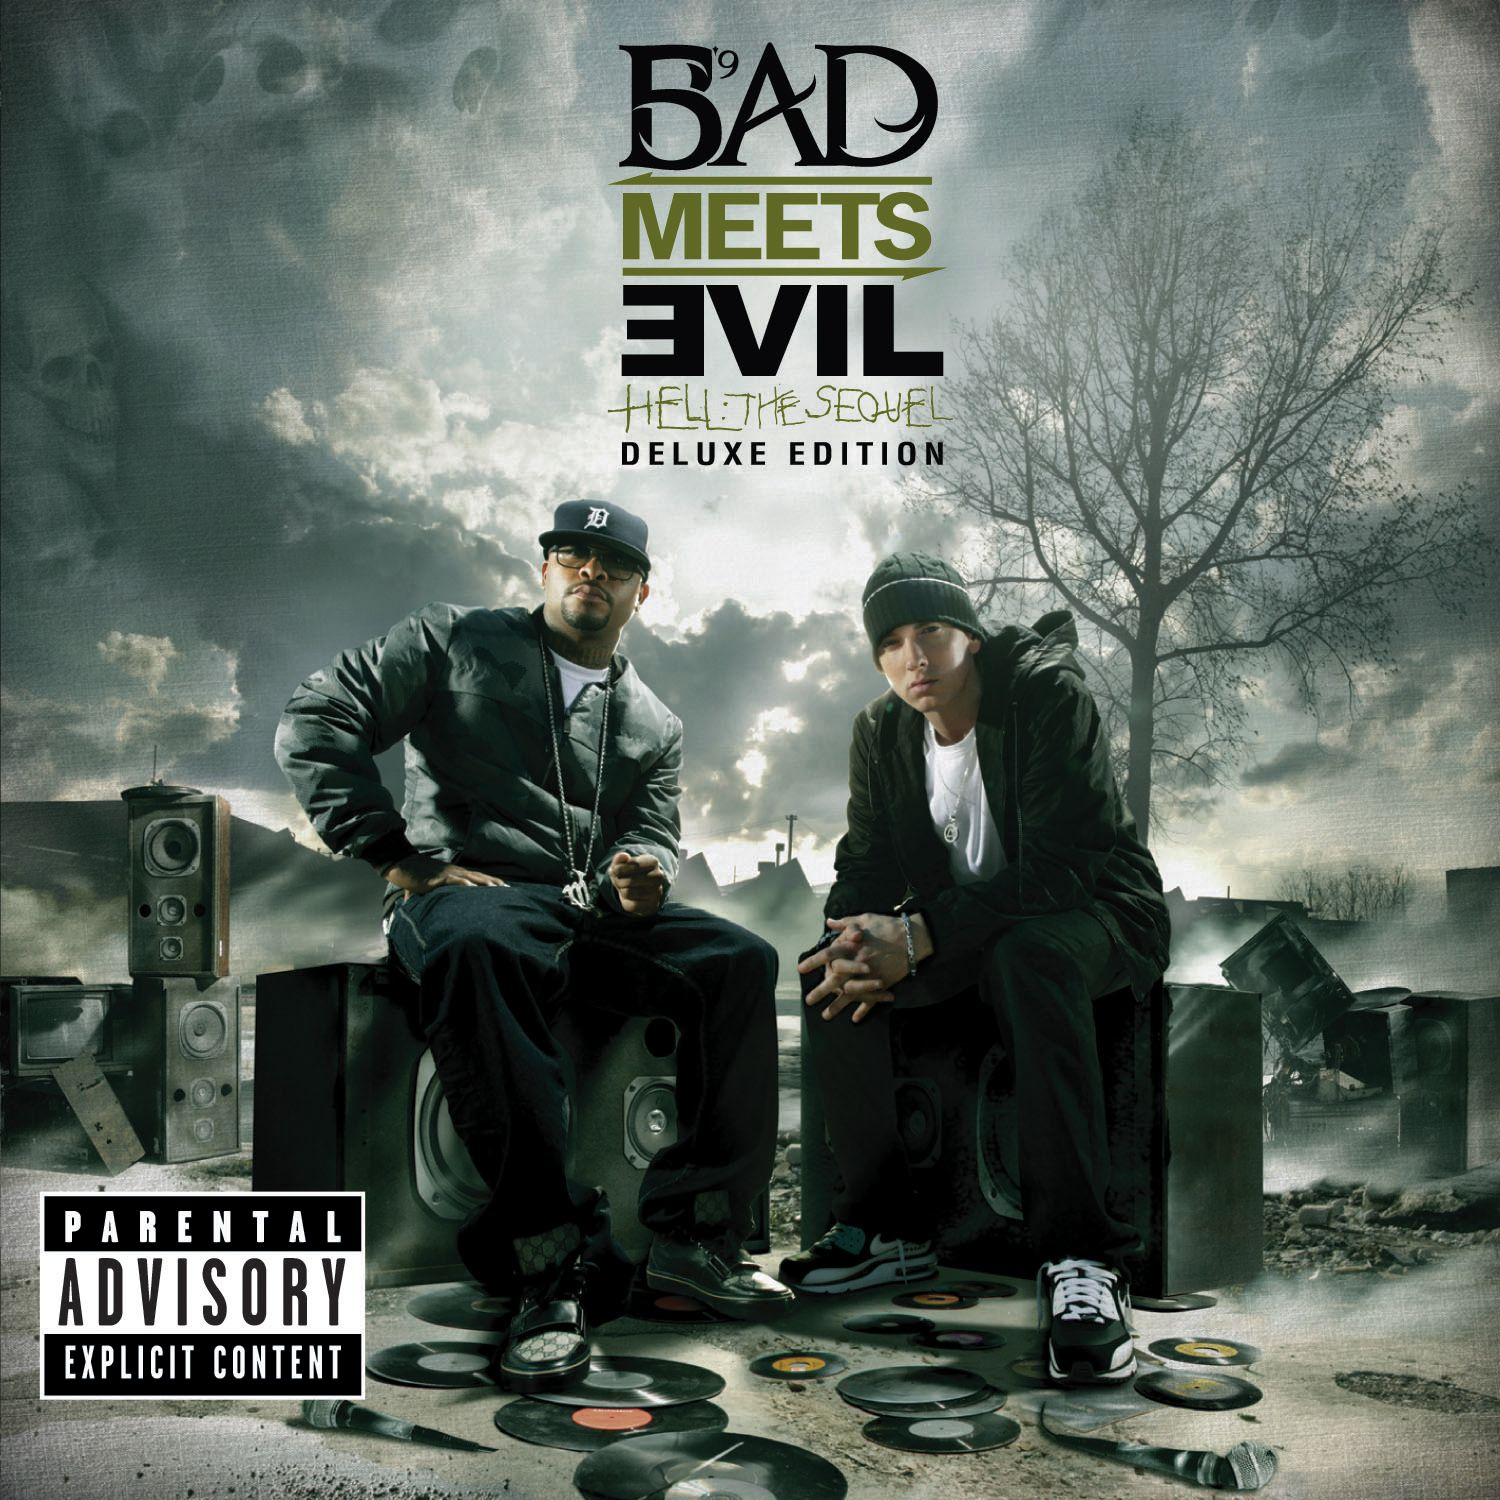 Bad Meets Evil - Hell: The Sequel album cover